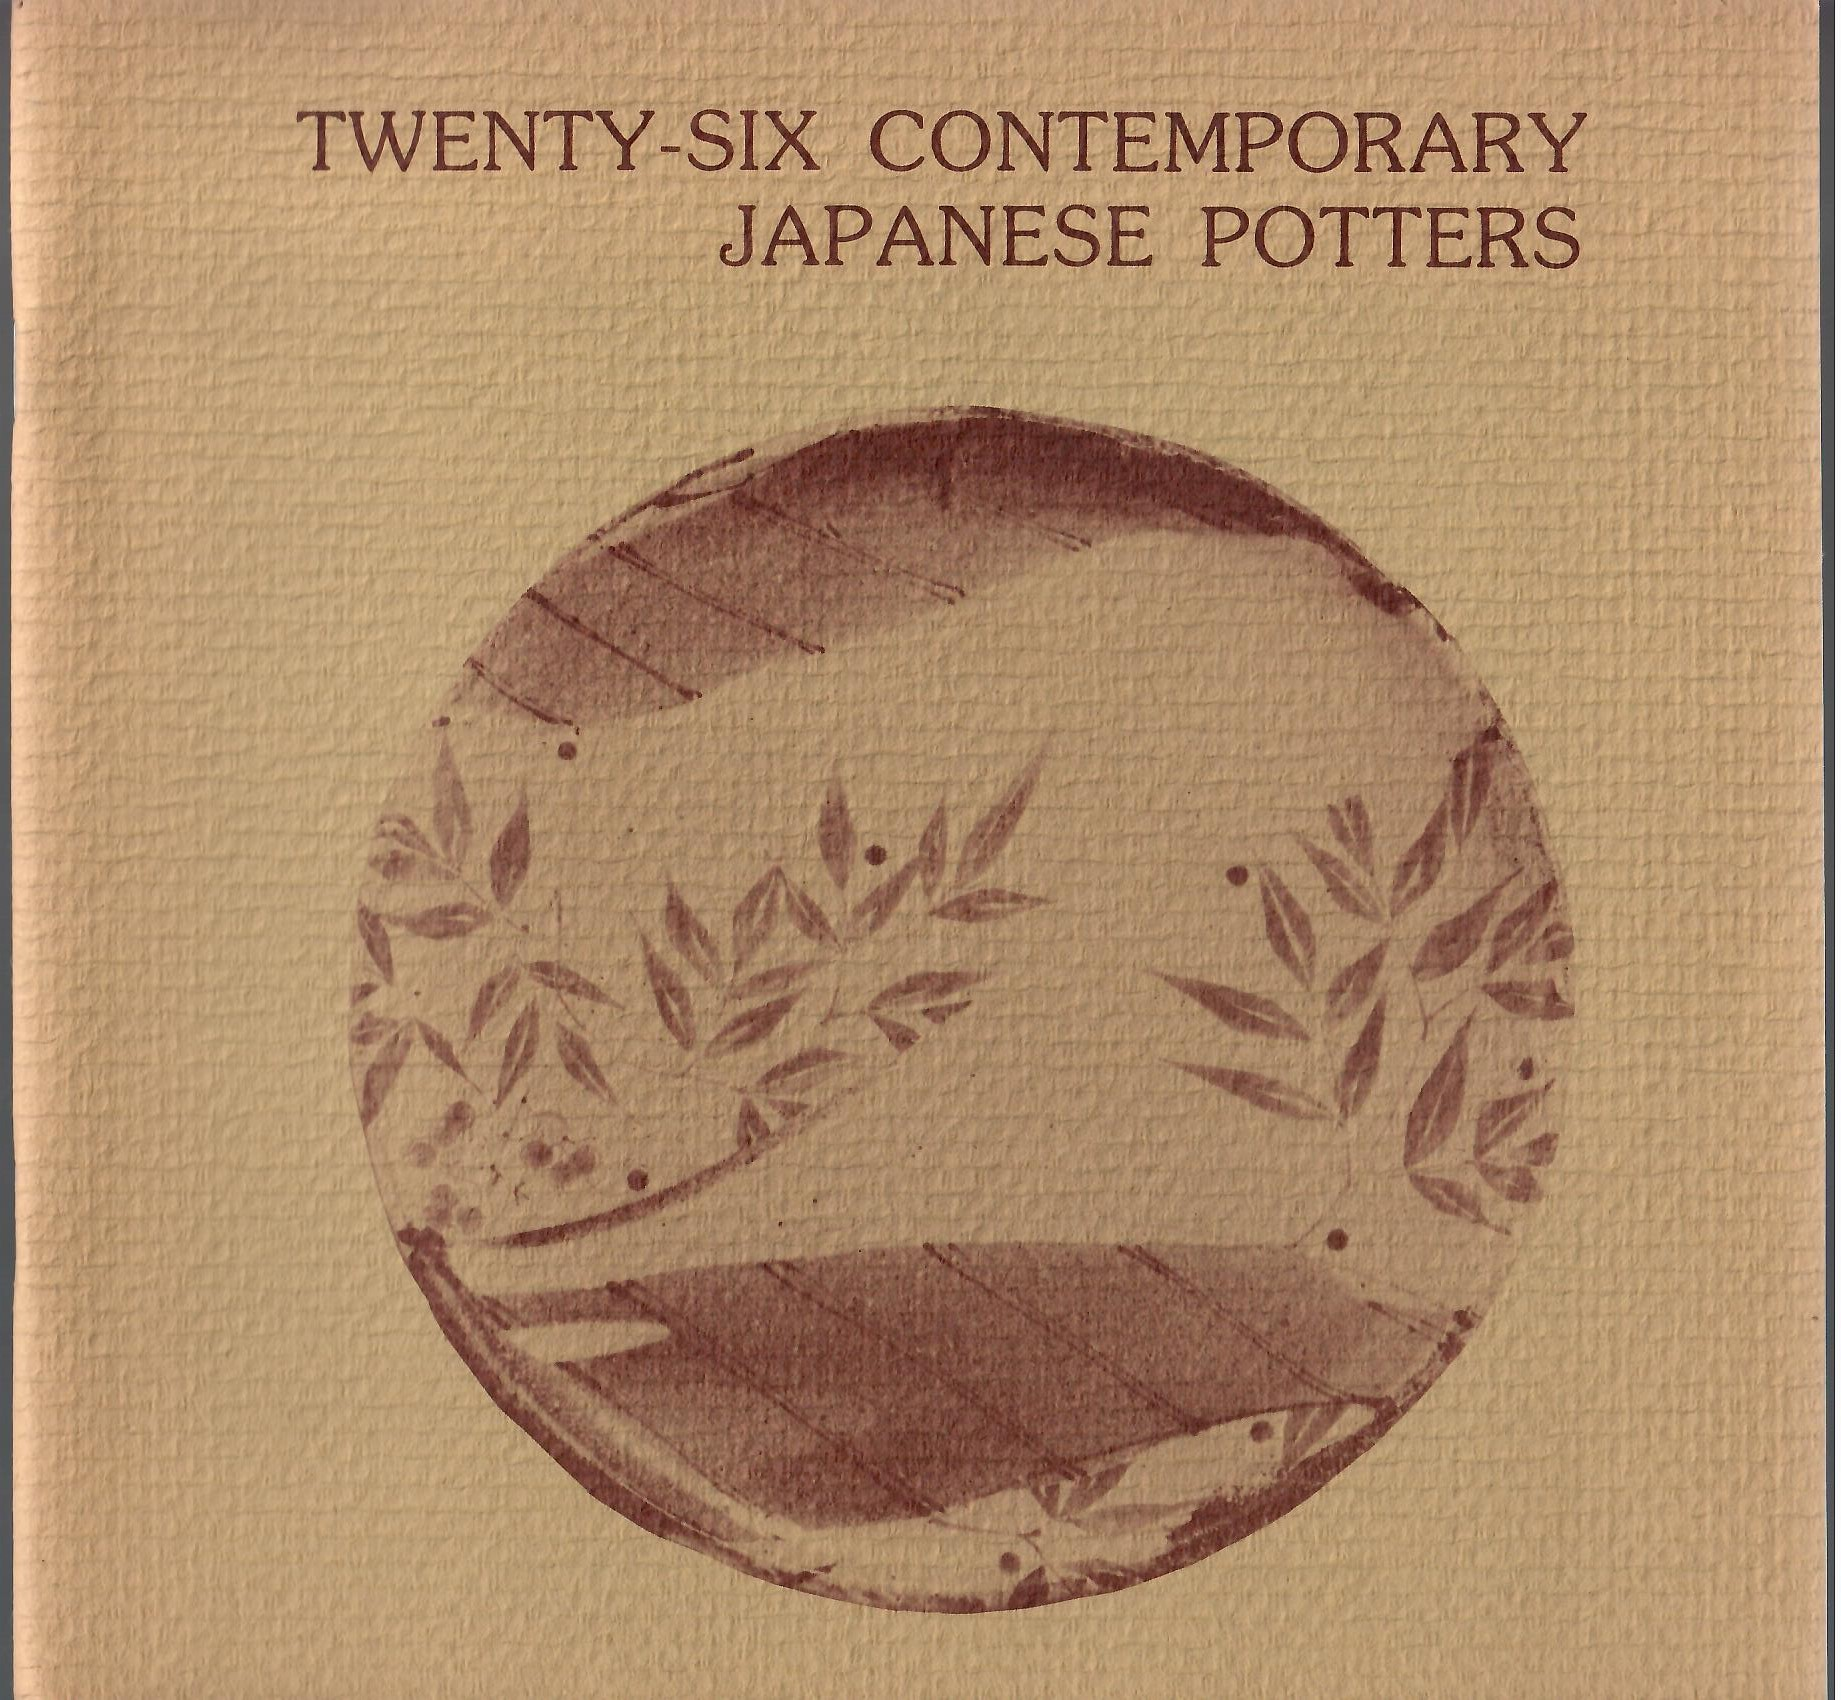 Image for Exhibition Catalog; TWENTY-SIX CONTEMPORARY JAPANESE POTTERS